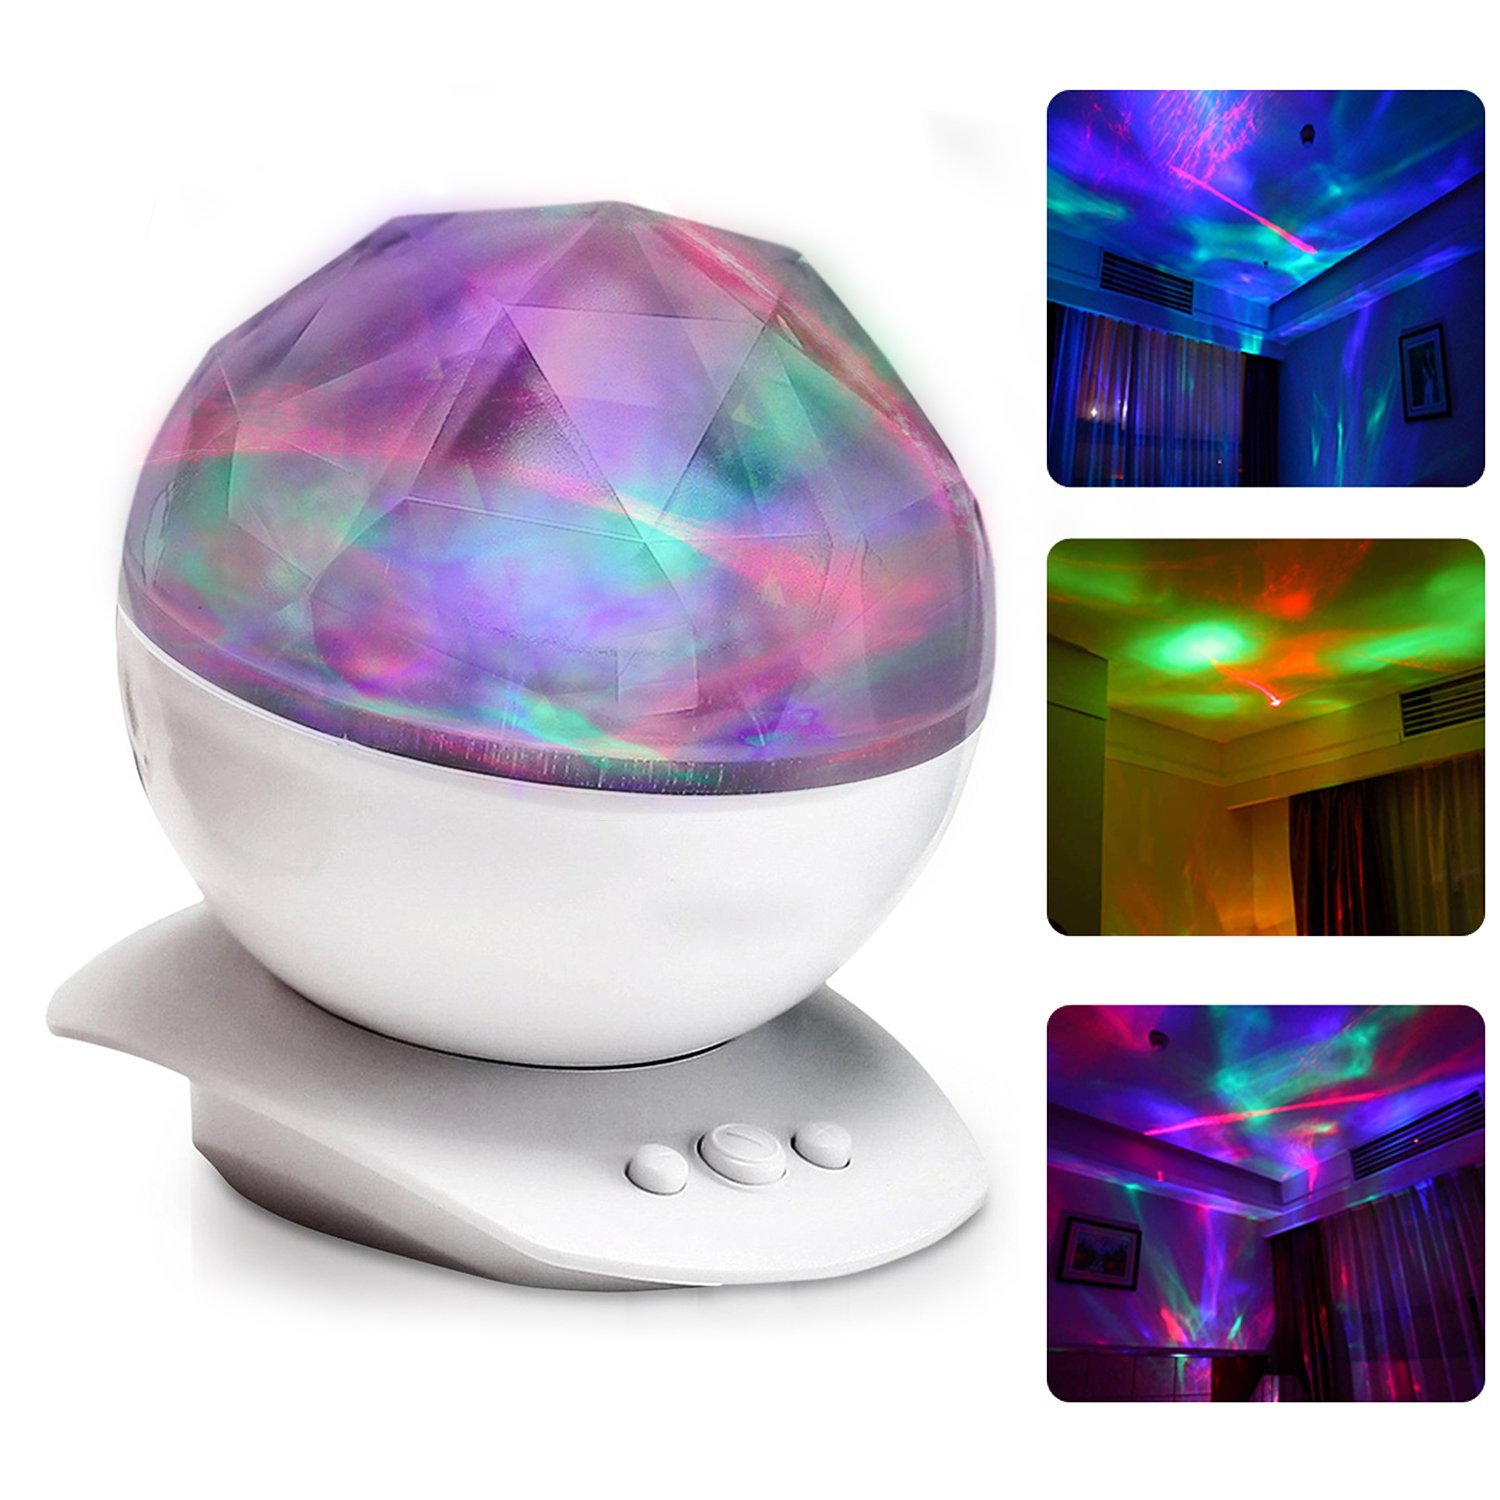 Night Light Projector, Amir Color Changing Aurora Borealis Light (12 LED Bulbs -8 Colors), Stereo Speakers, Sleep Aid Light, Decorative Light, Mood Light -Perfect for Kid